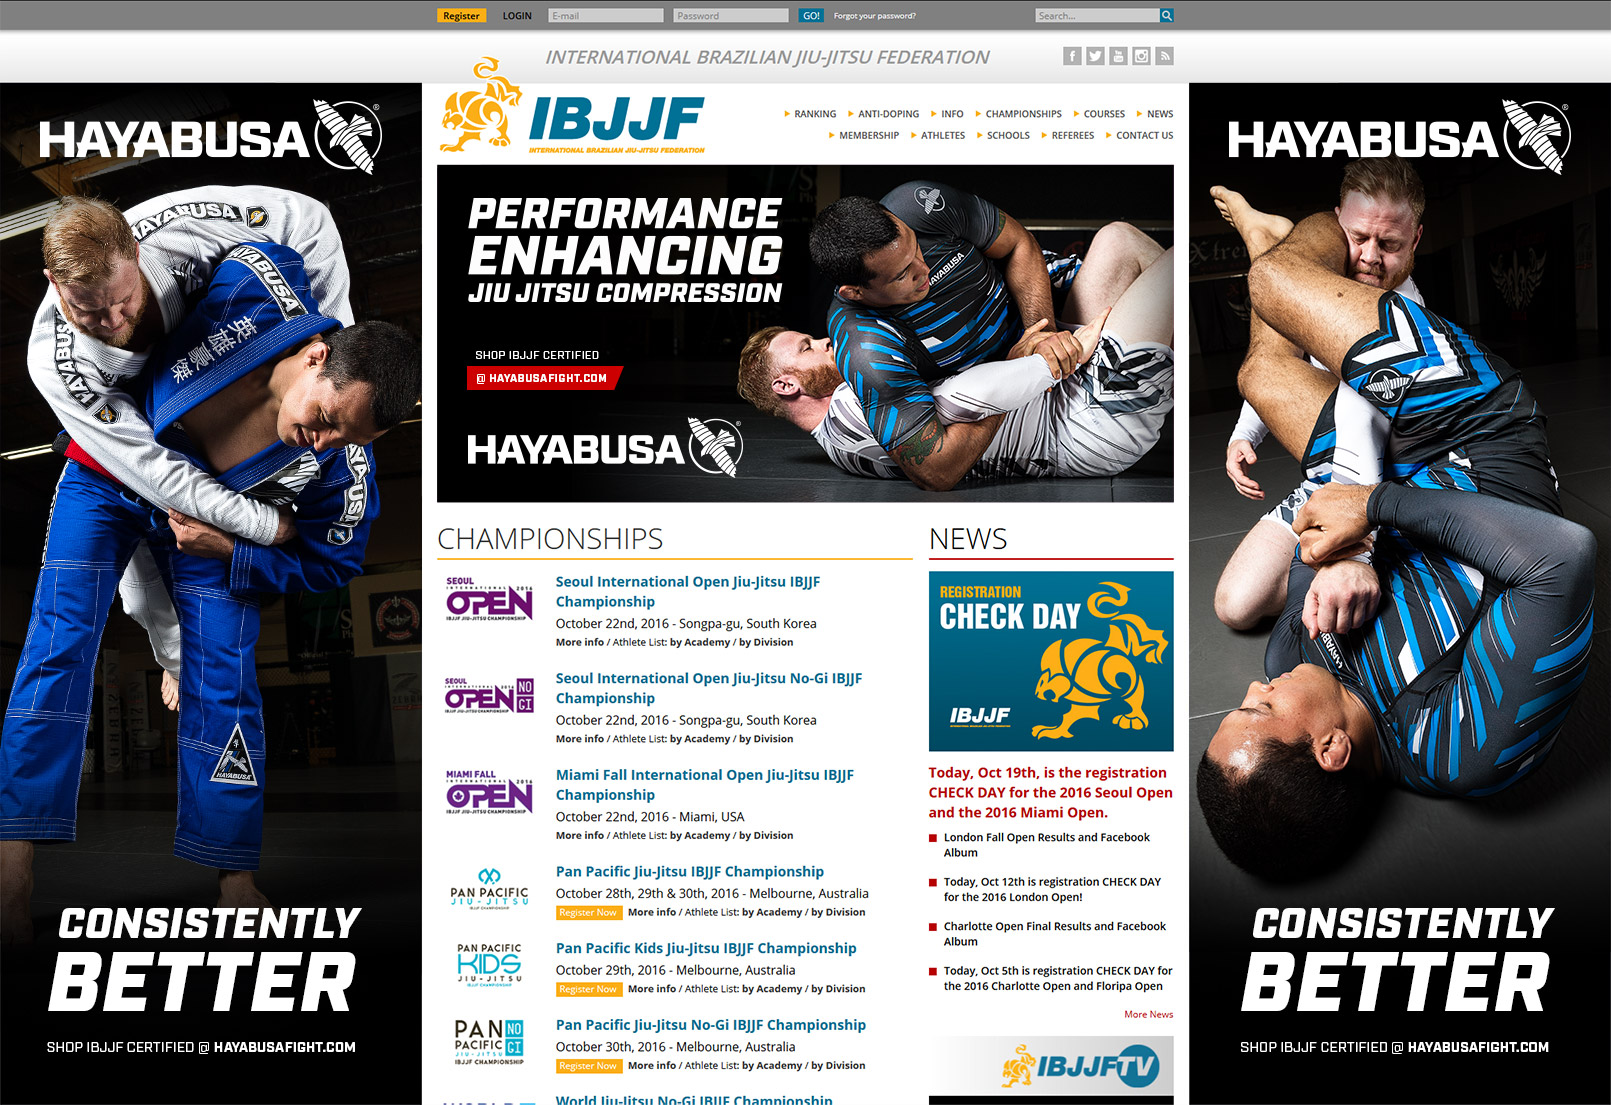 IBJJF Takeover - Metaru Charged - Shinju 3